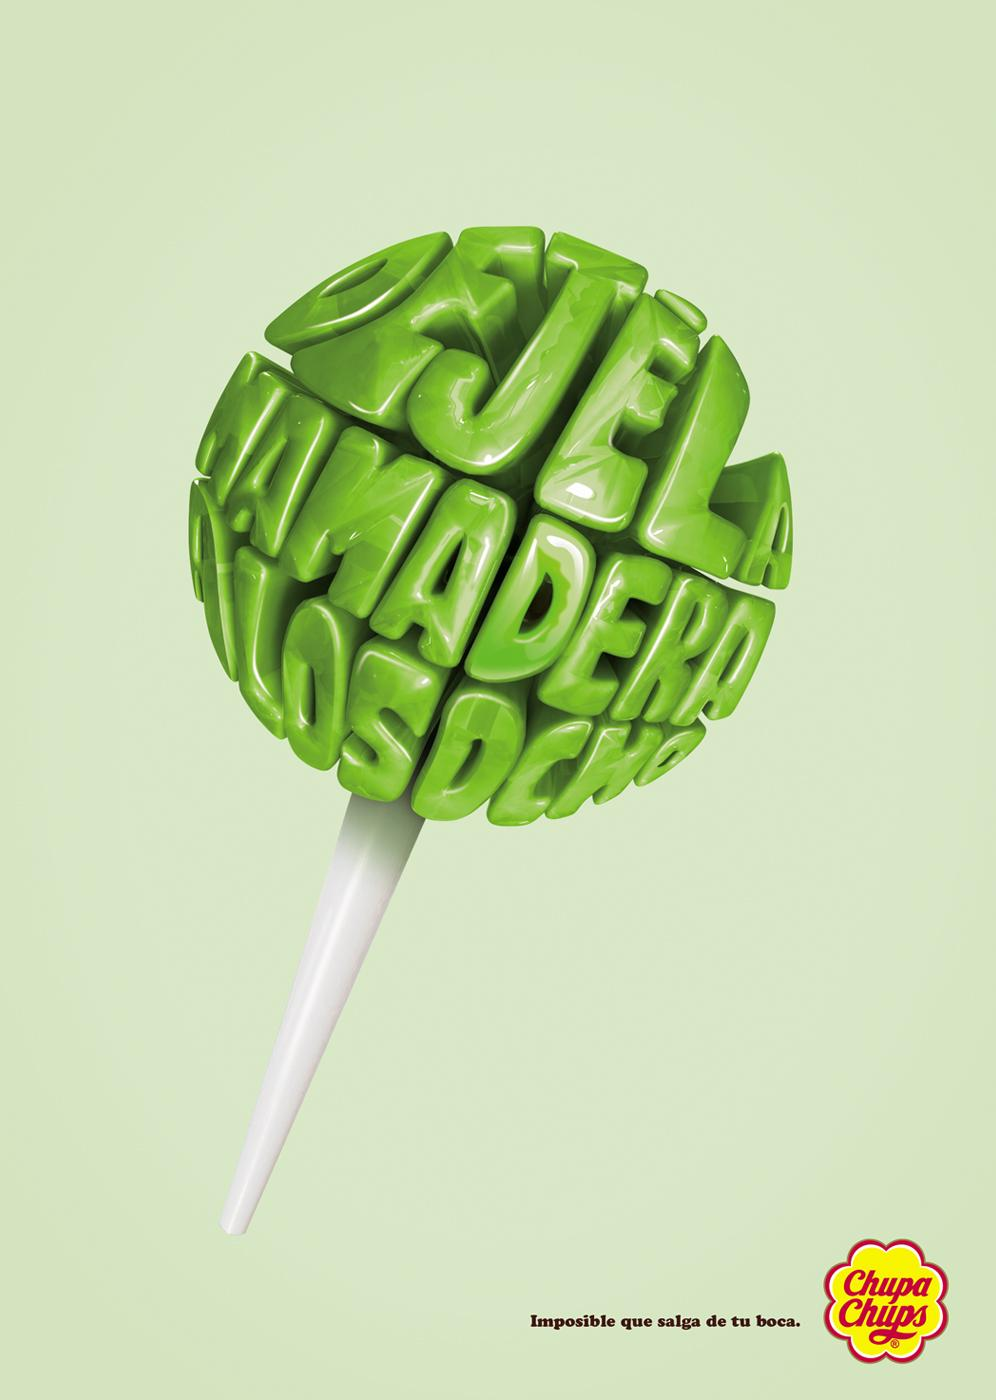 Creative Typography Ads - Chupa Chups: Lollypops